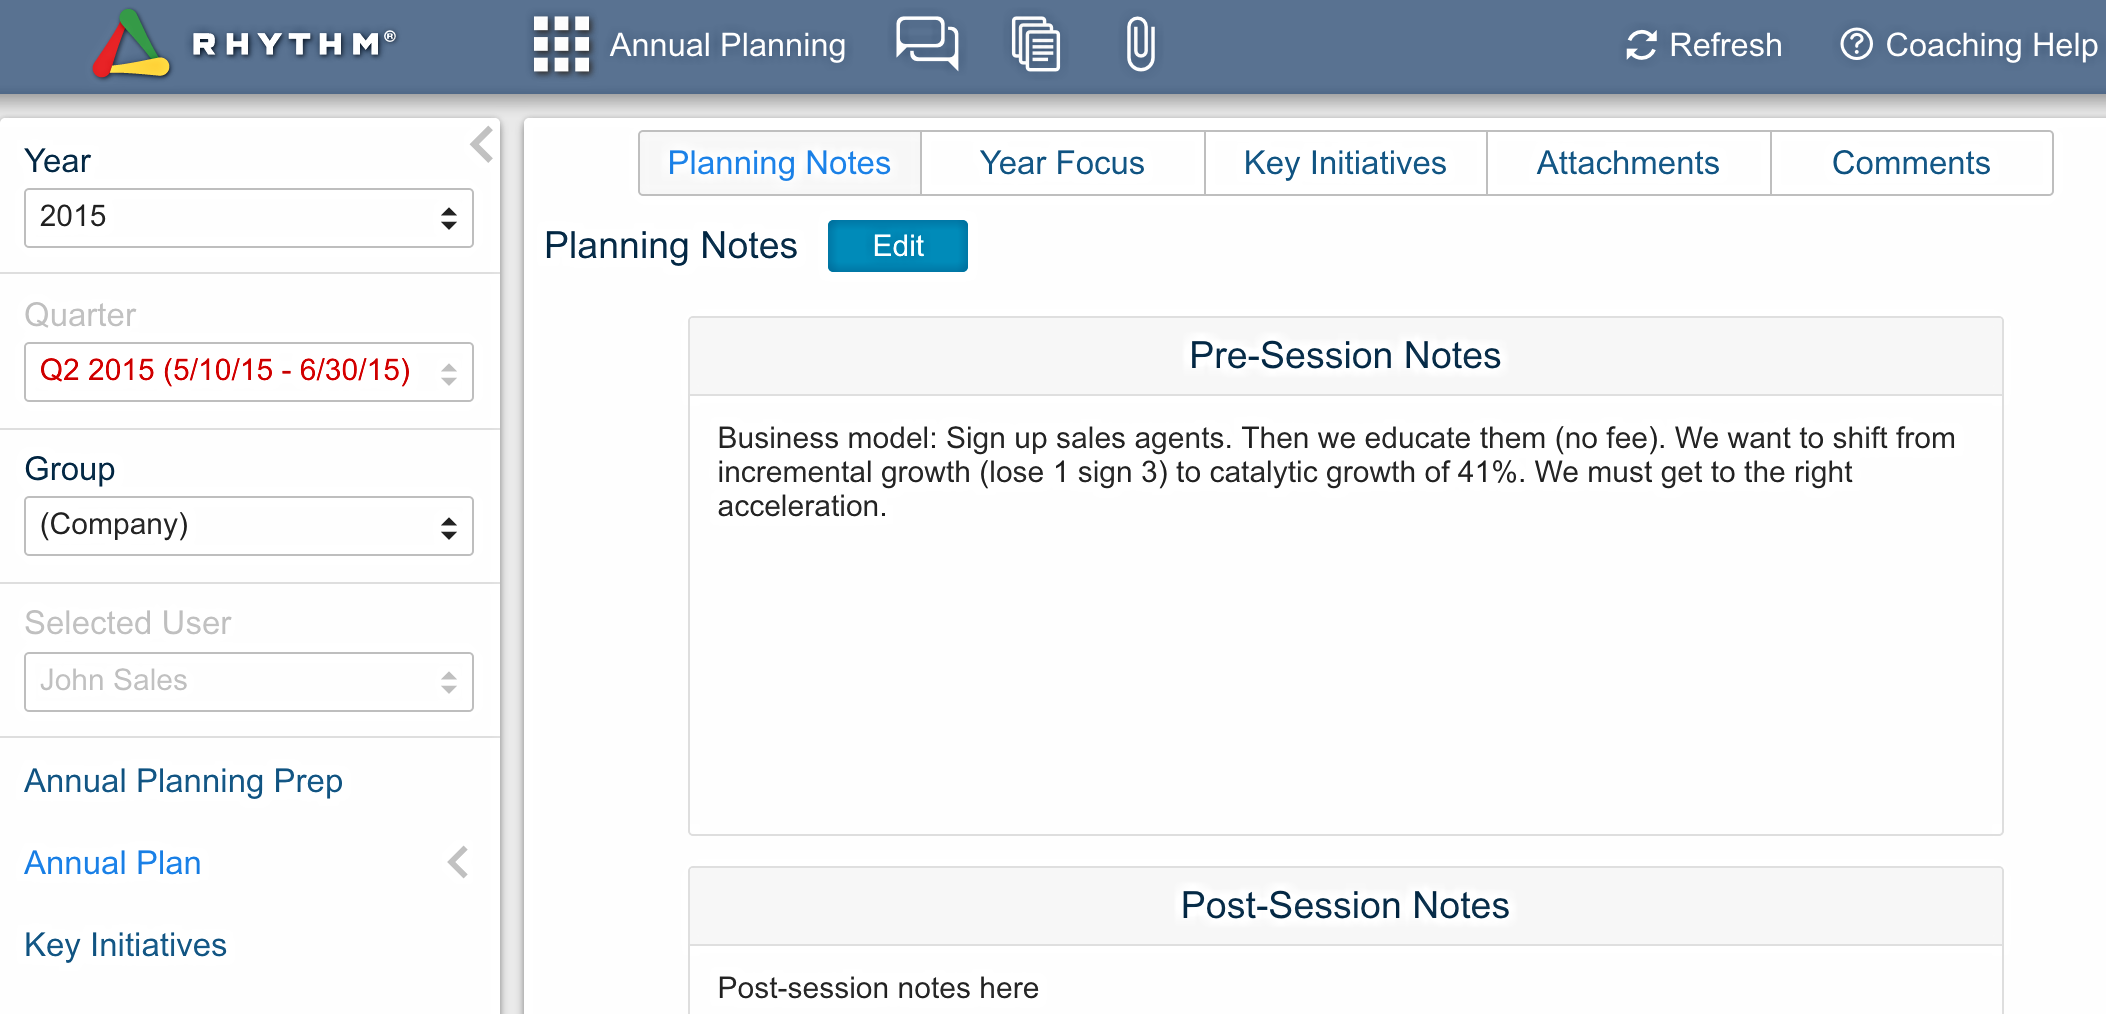 Annual Planning: Pre-Planning session notes in Rhythm software